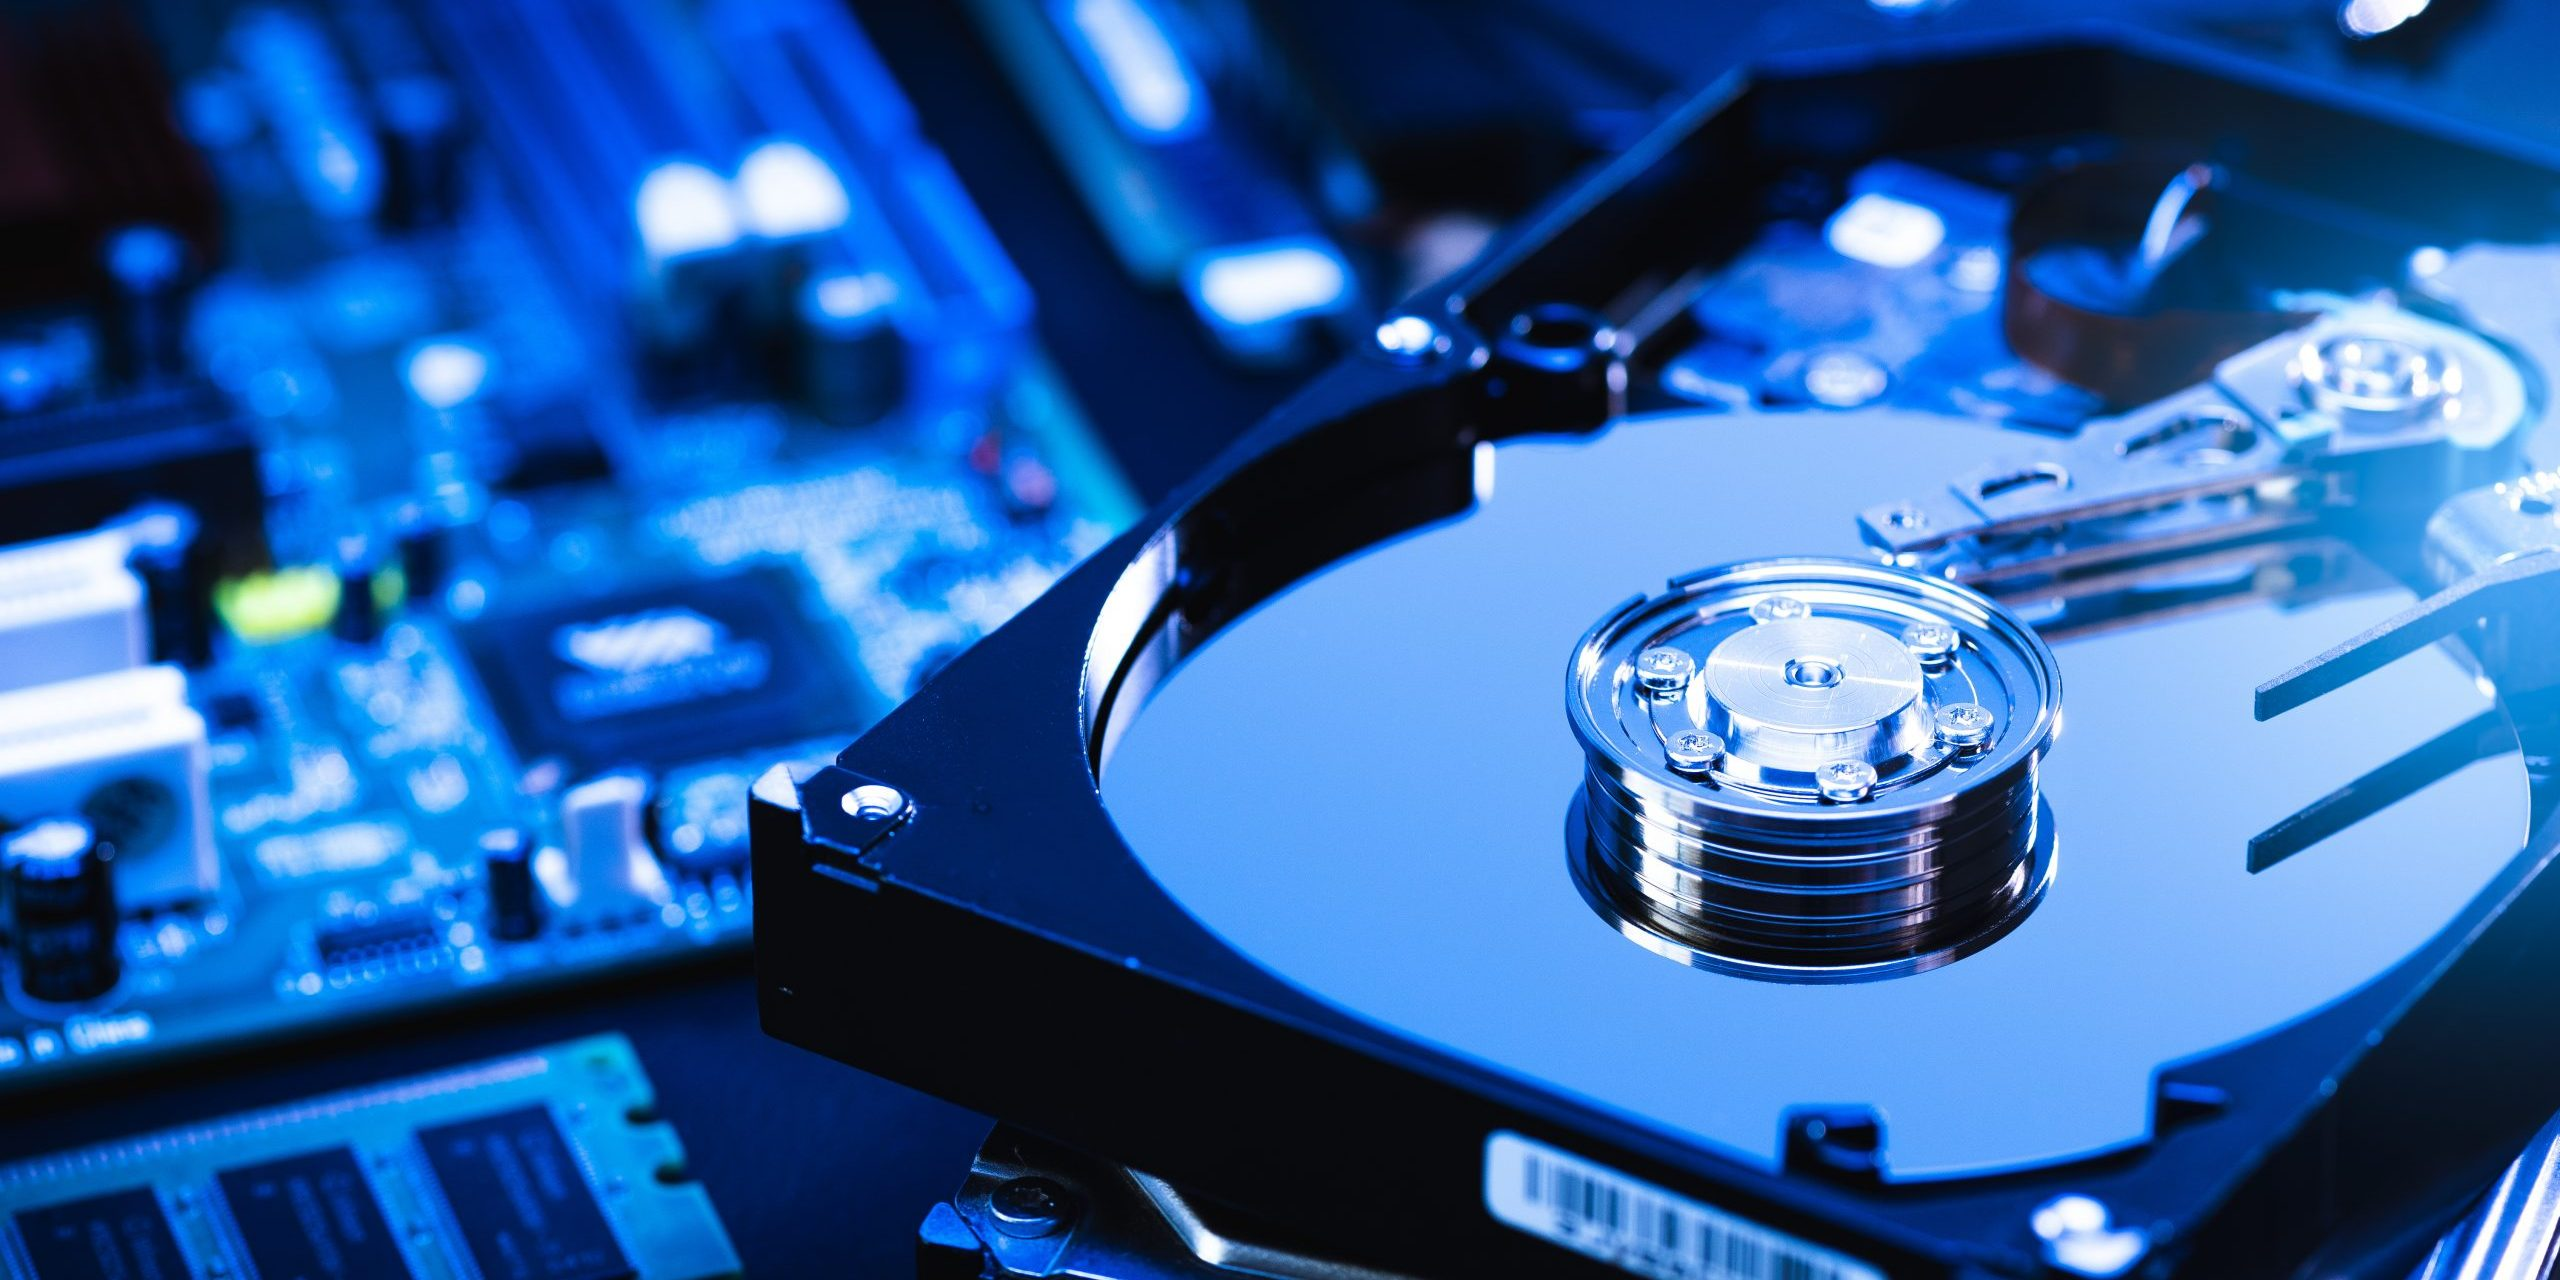 Hard drive and computer components